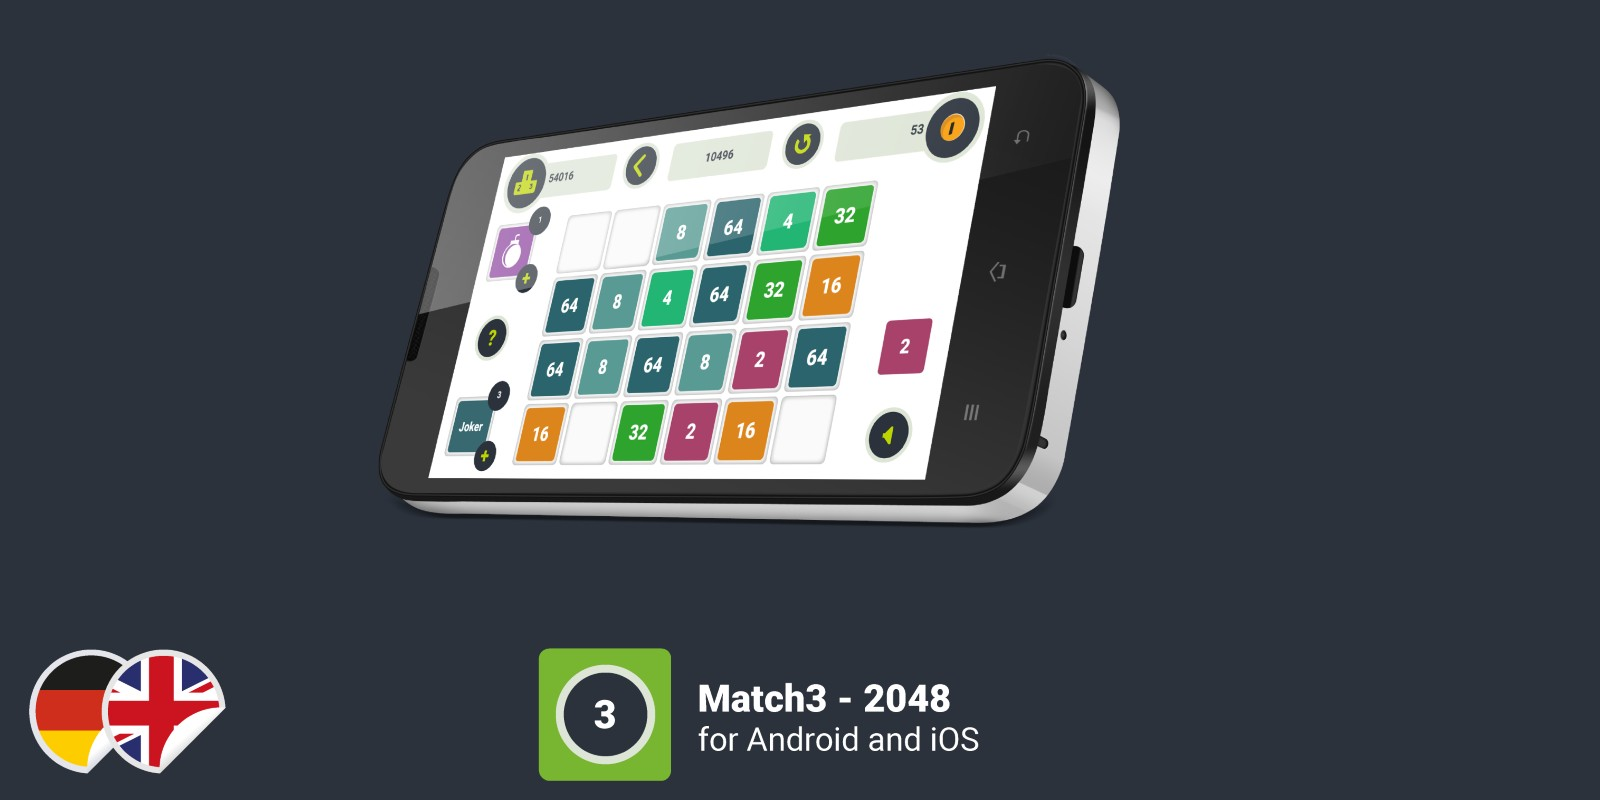 Match3 2048 - Construct 2 Game Template